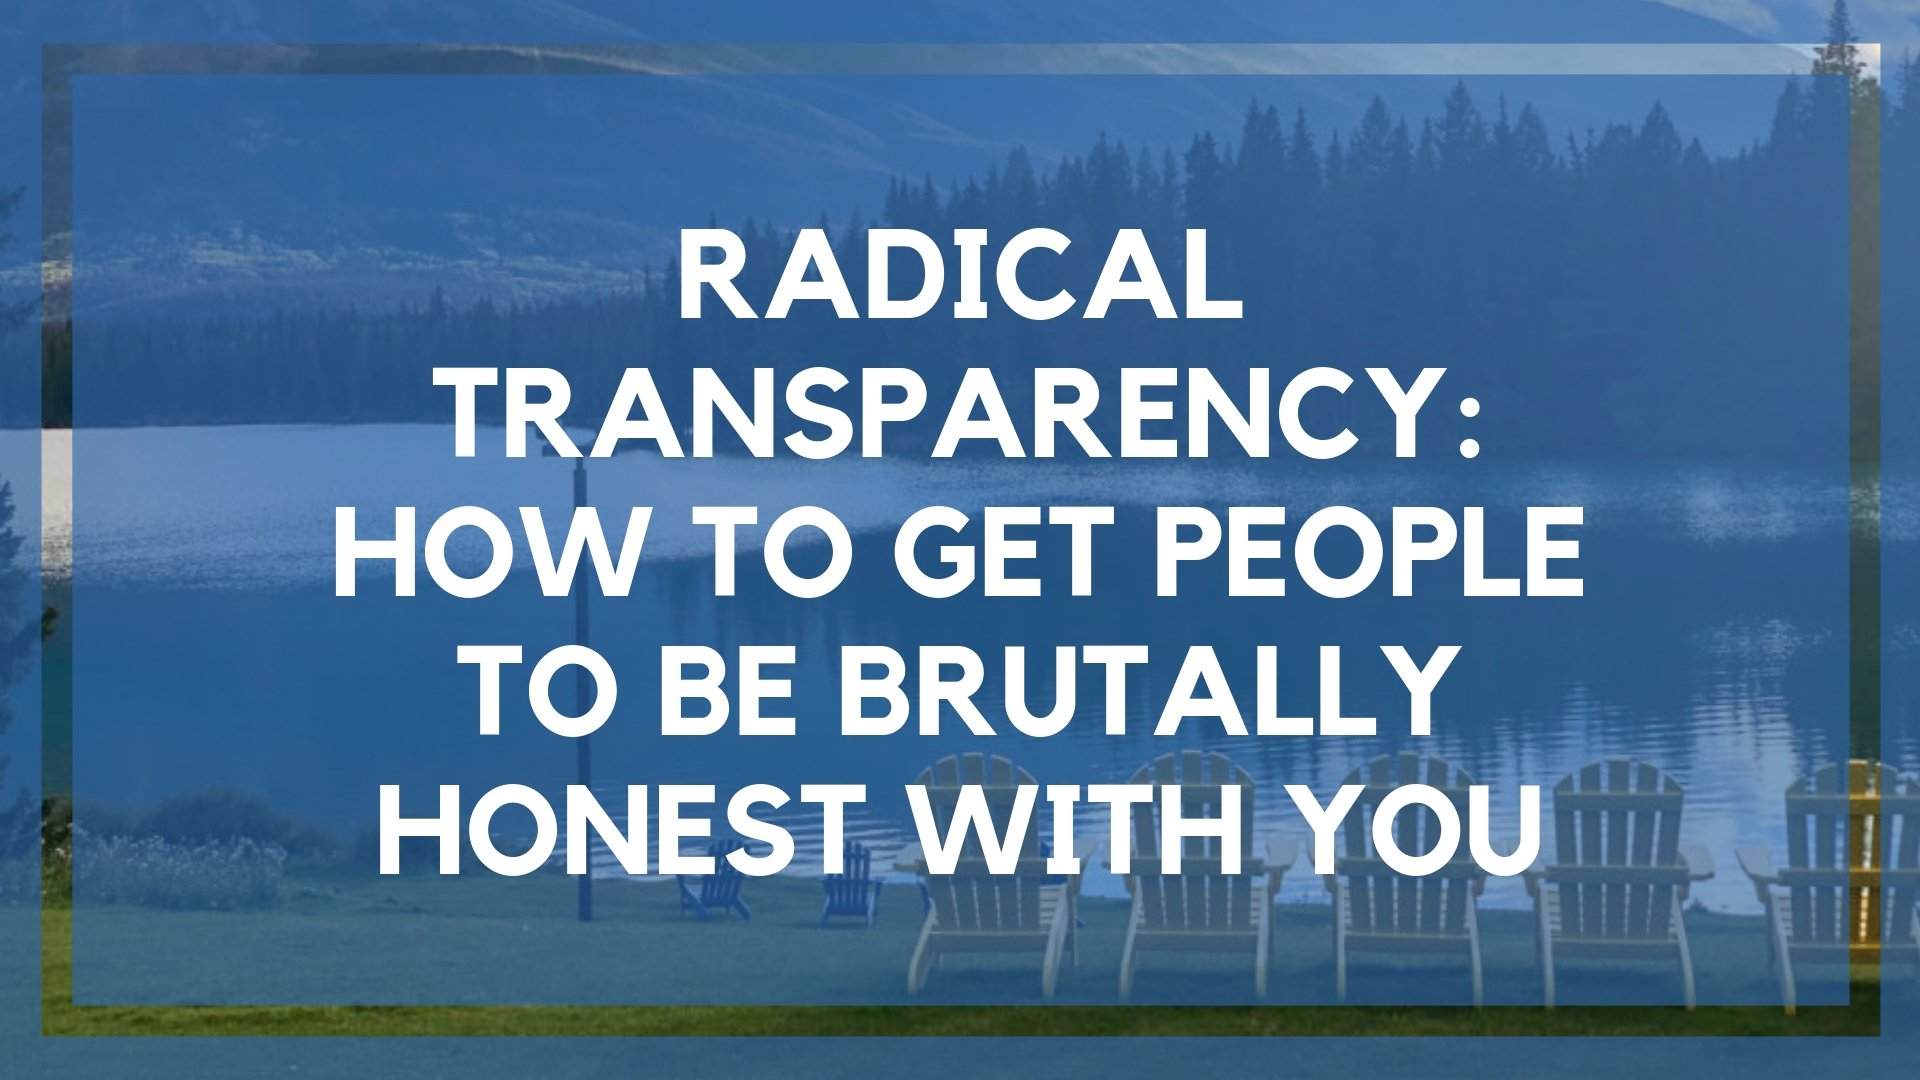 Radical Transparency: How to Get People to Be Brutally Honest With You